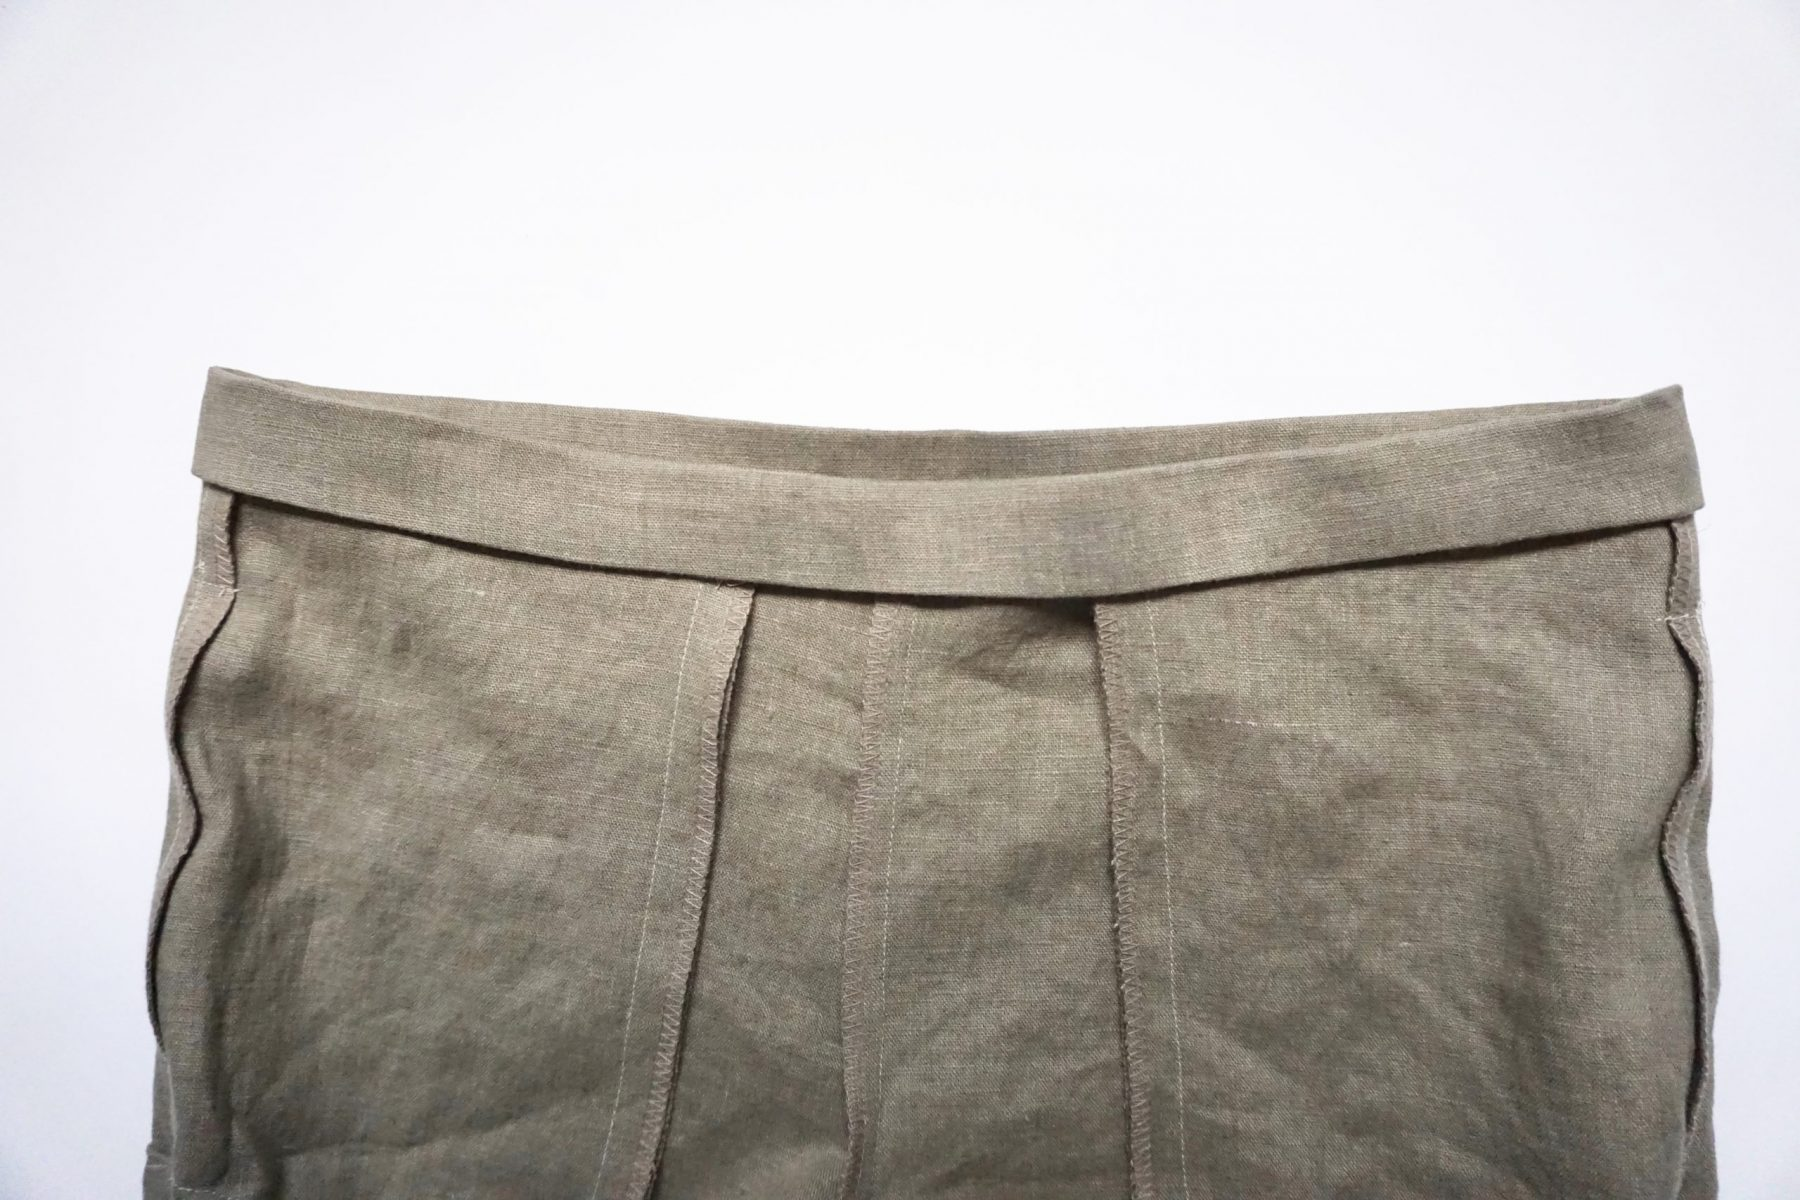 Fold the remaining waistband edge down